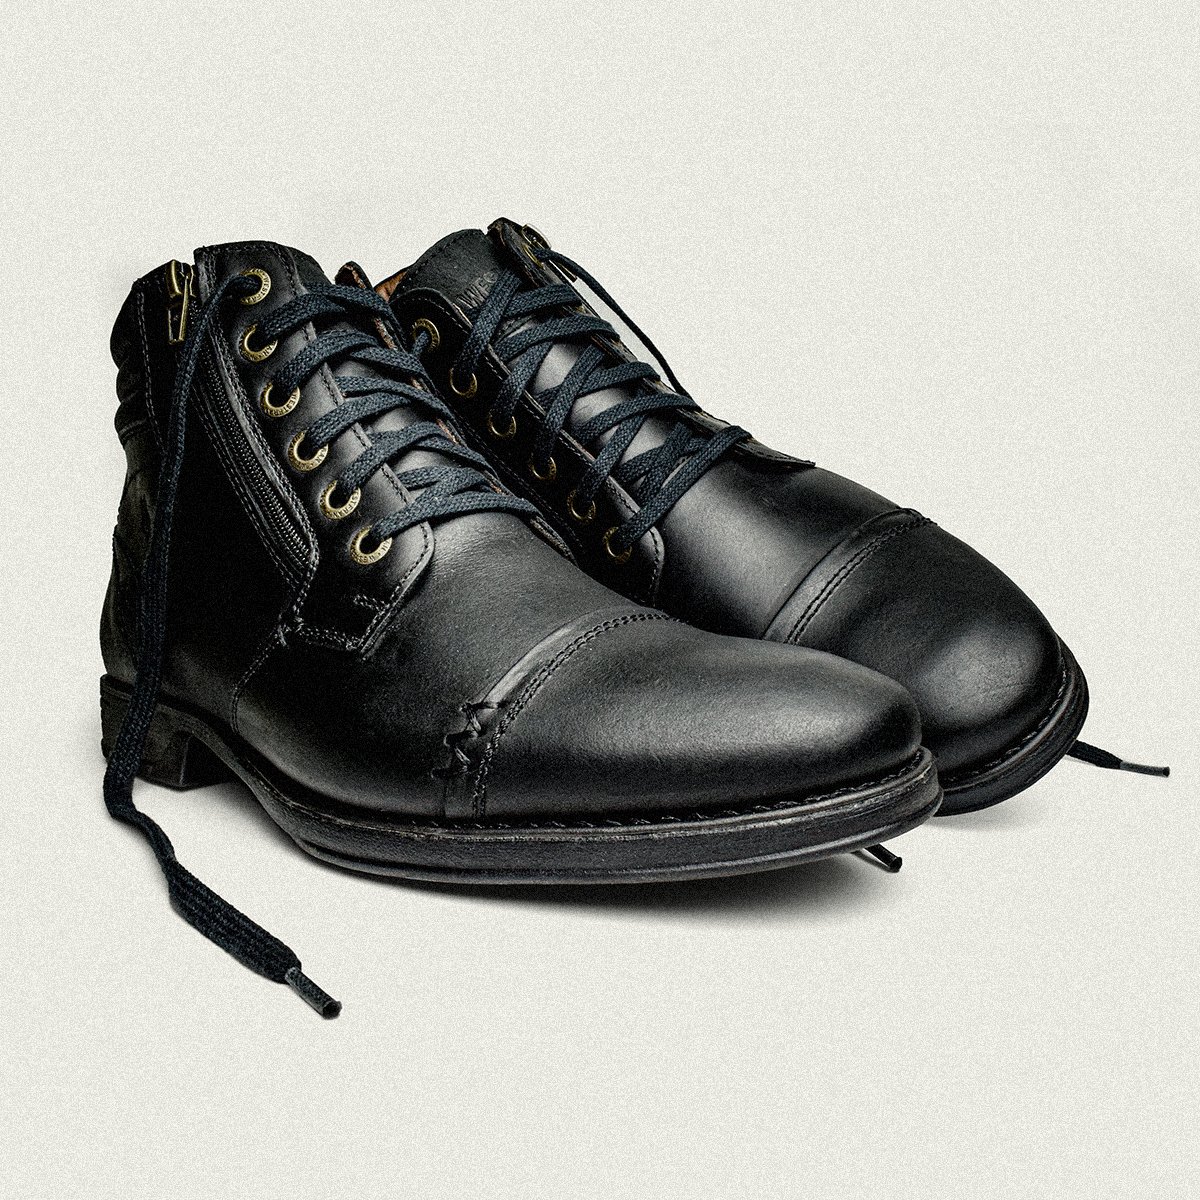 Bota Dress Masculina York 28 Crazy Preto